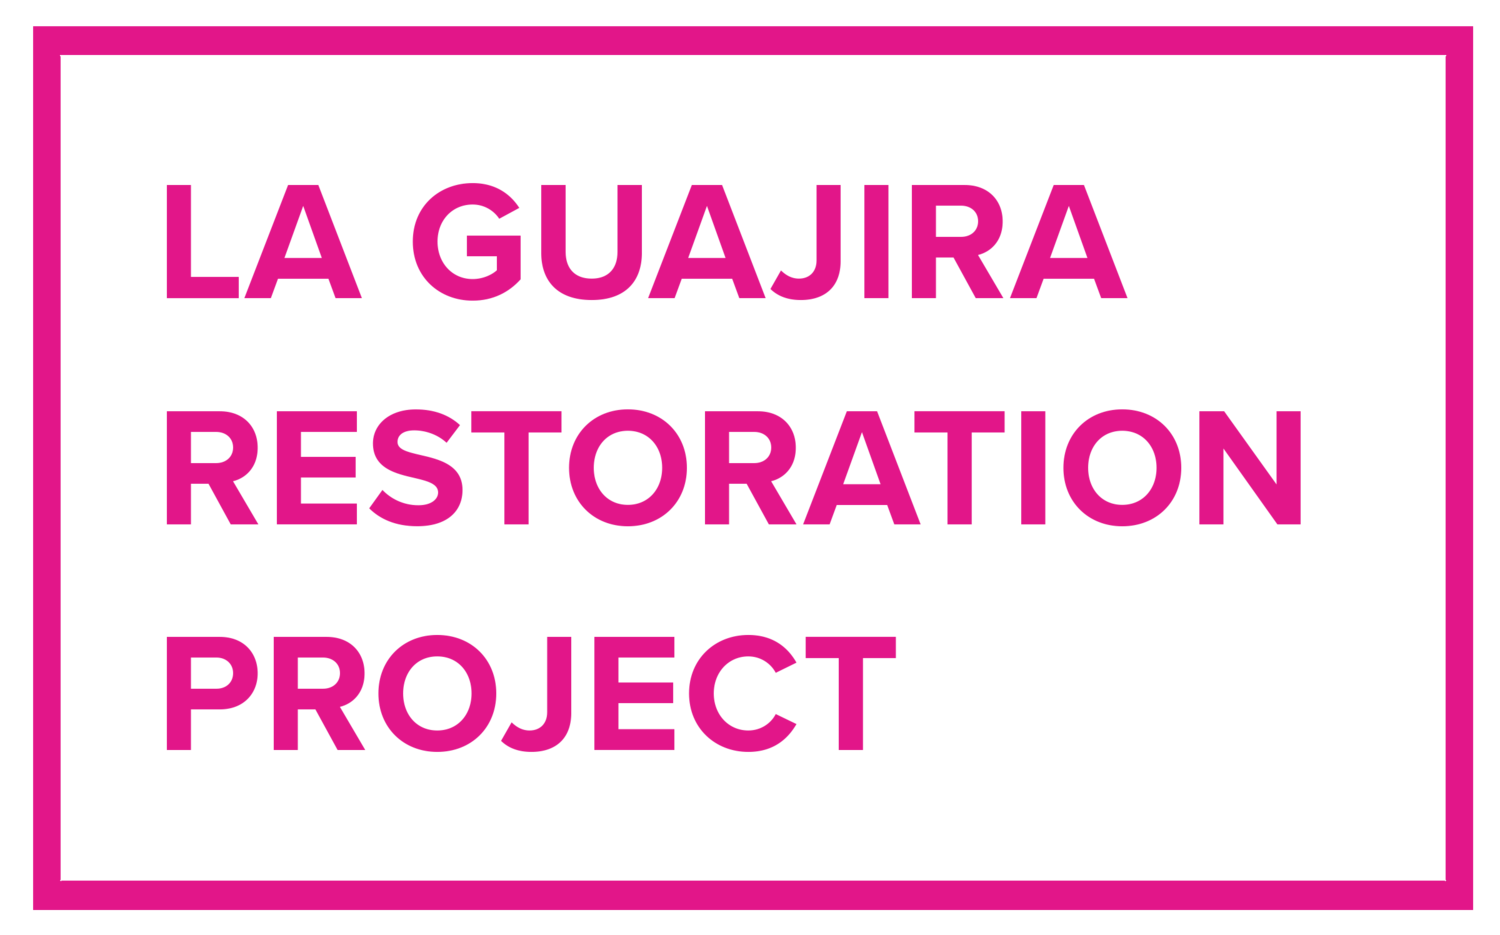 La Guajira Restoration Project